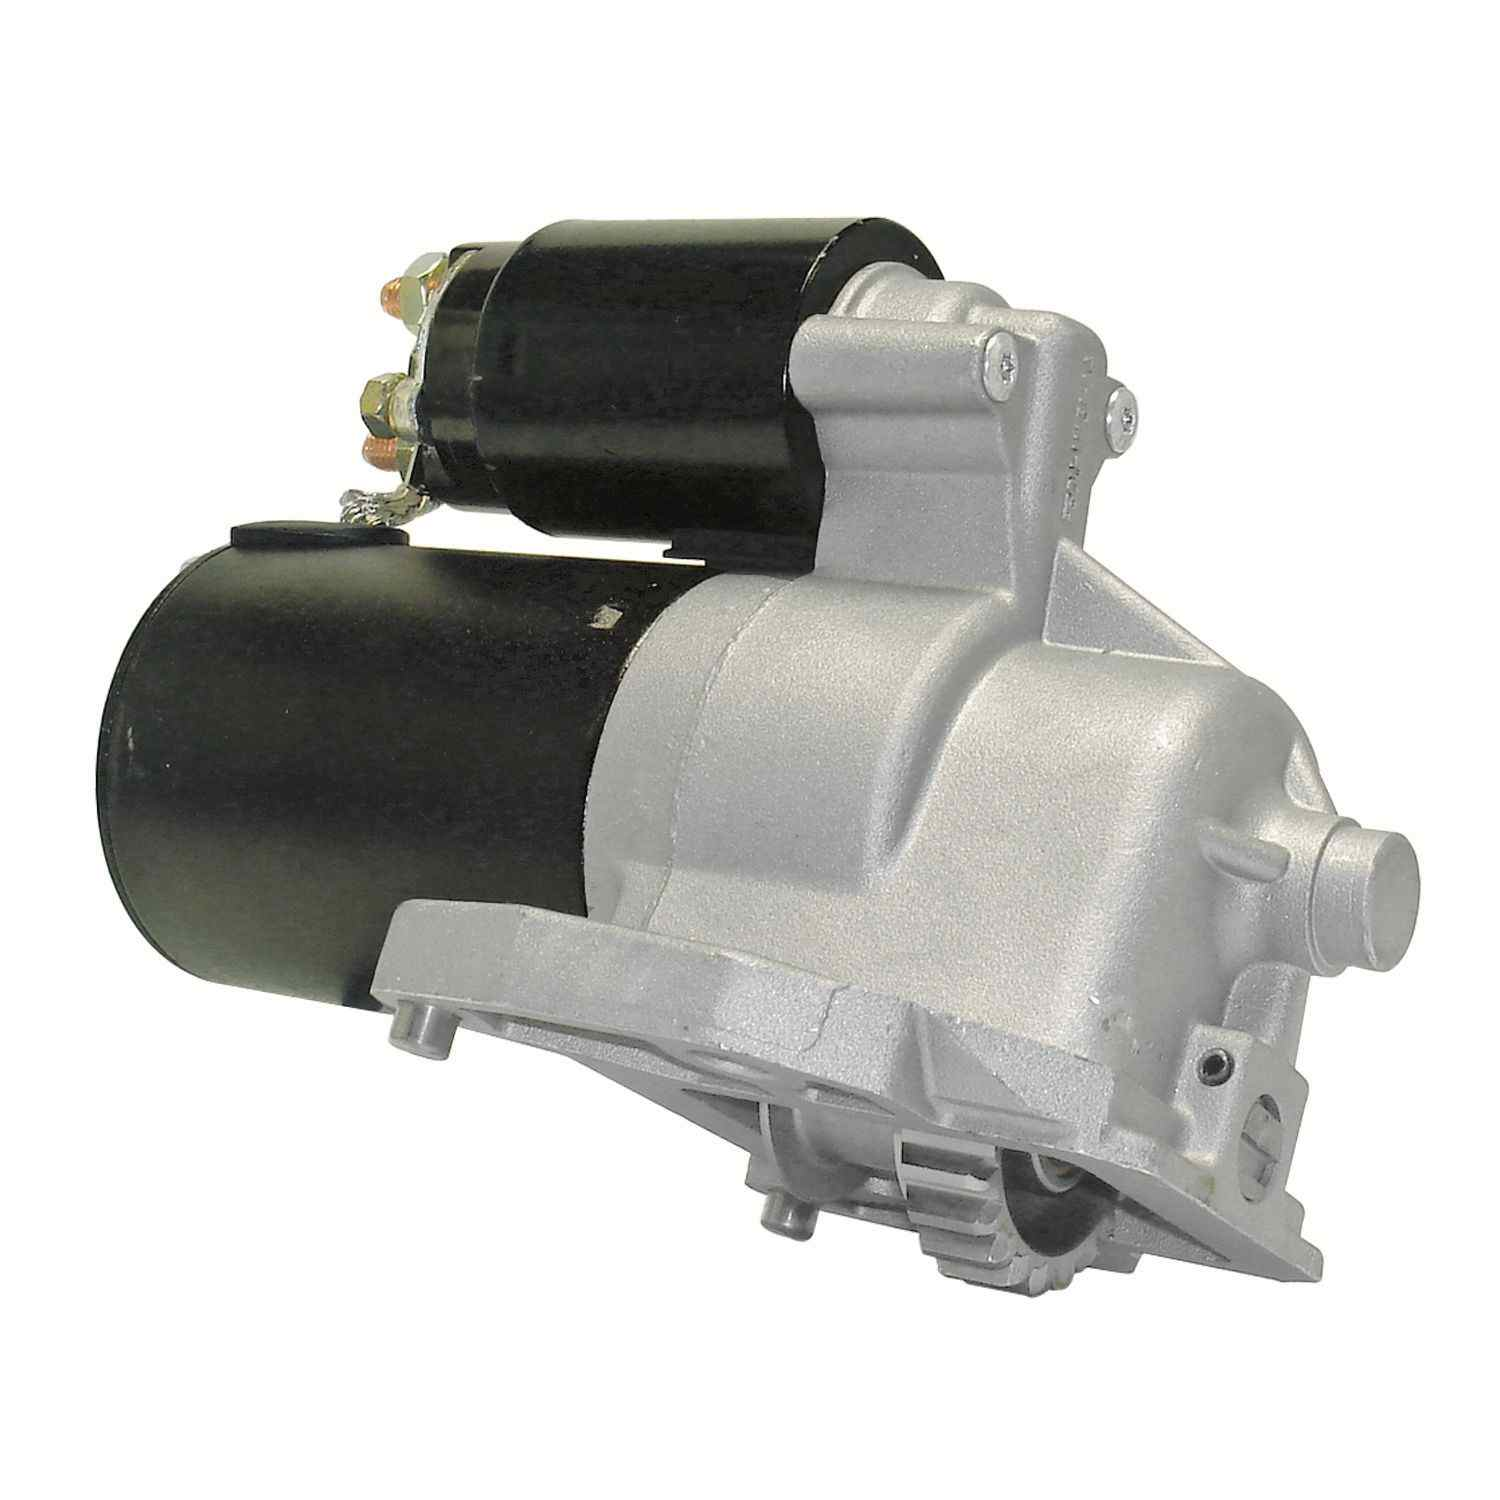 ACDELCO GOLD/PROFESSIONAL - Reman Starter Motor - DCC 336-1806